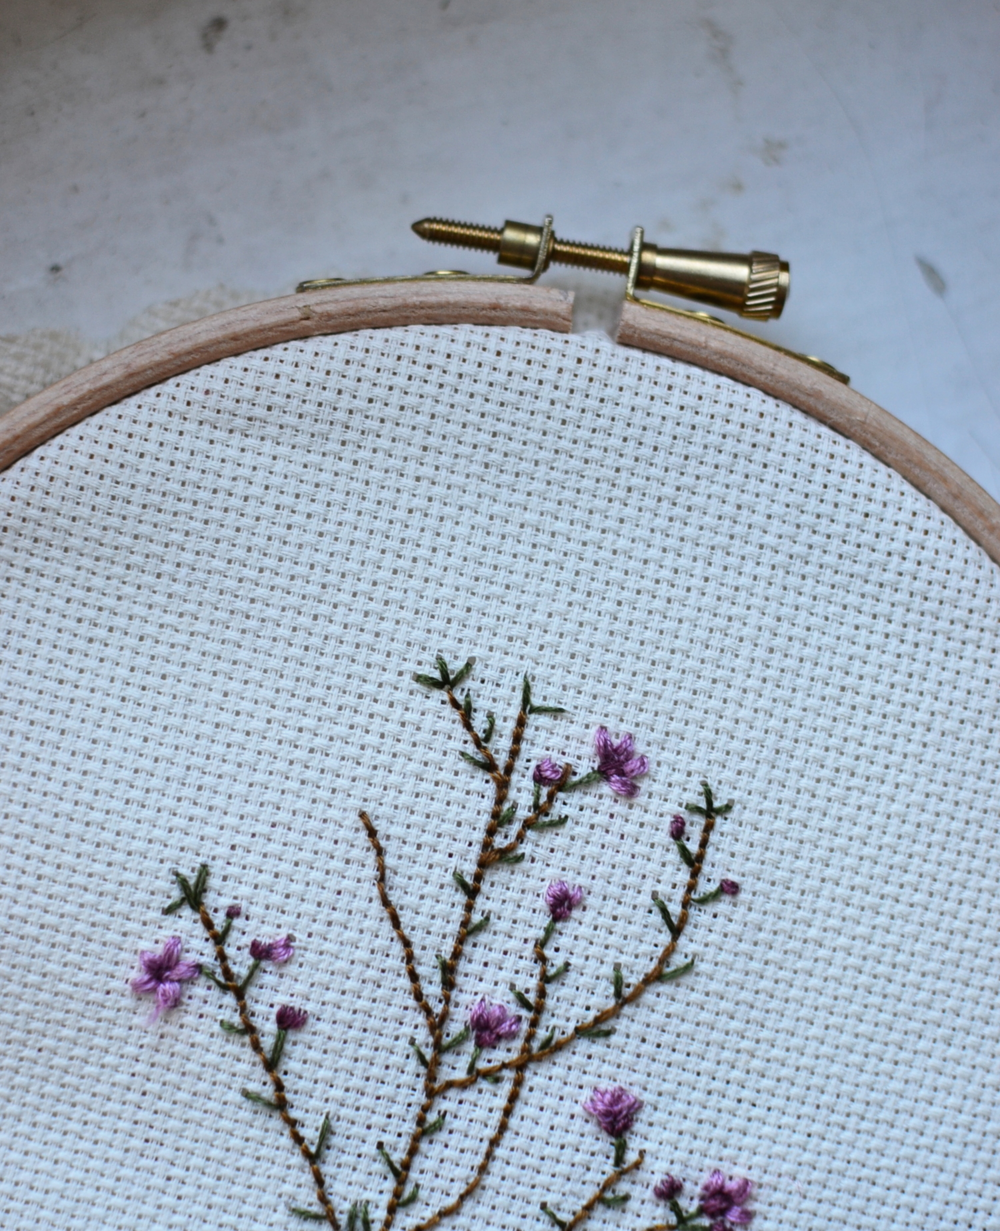 Botanicalb embroidery project: chamelaucium